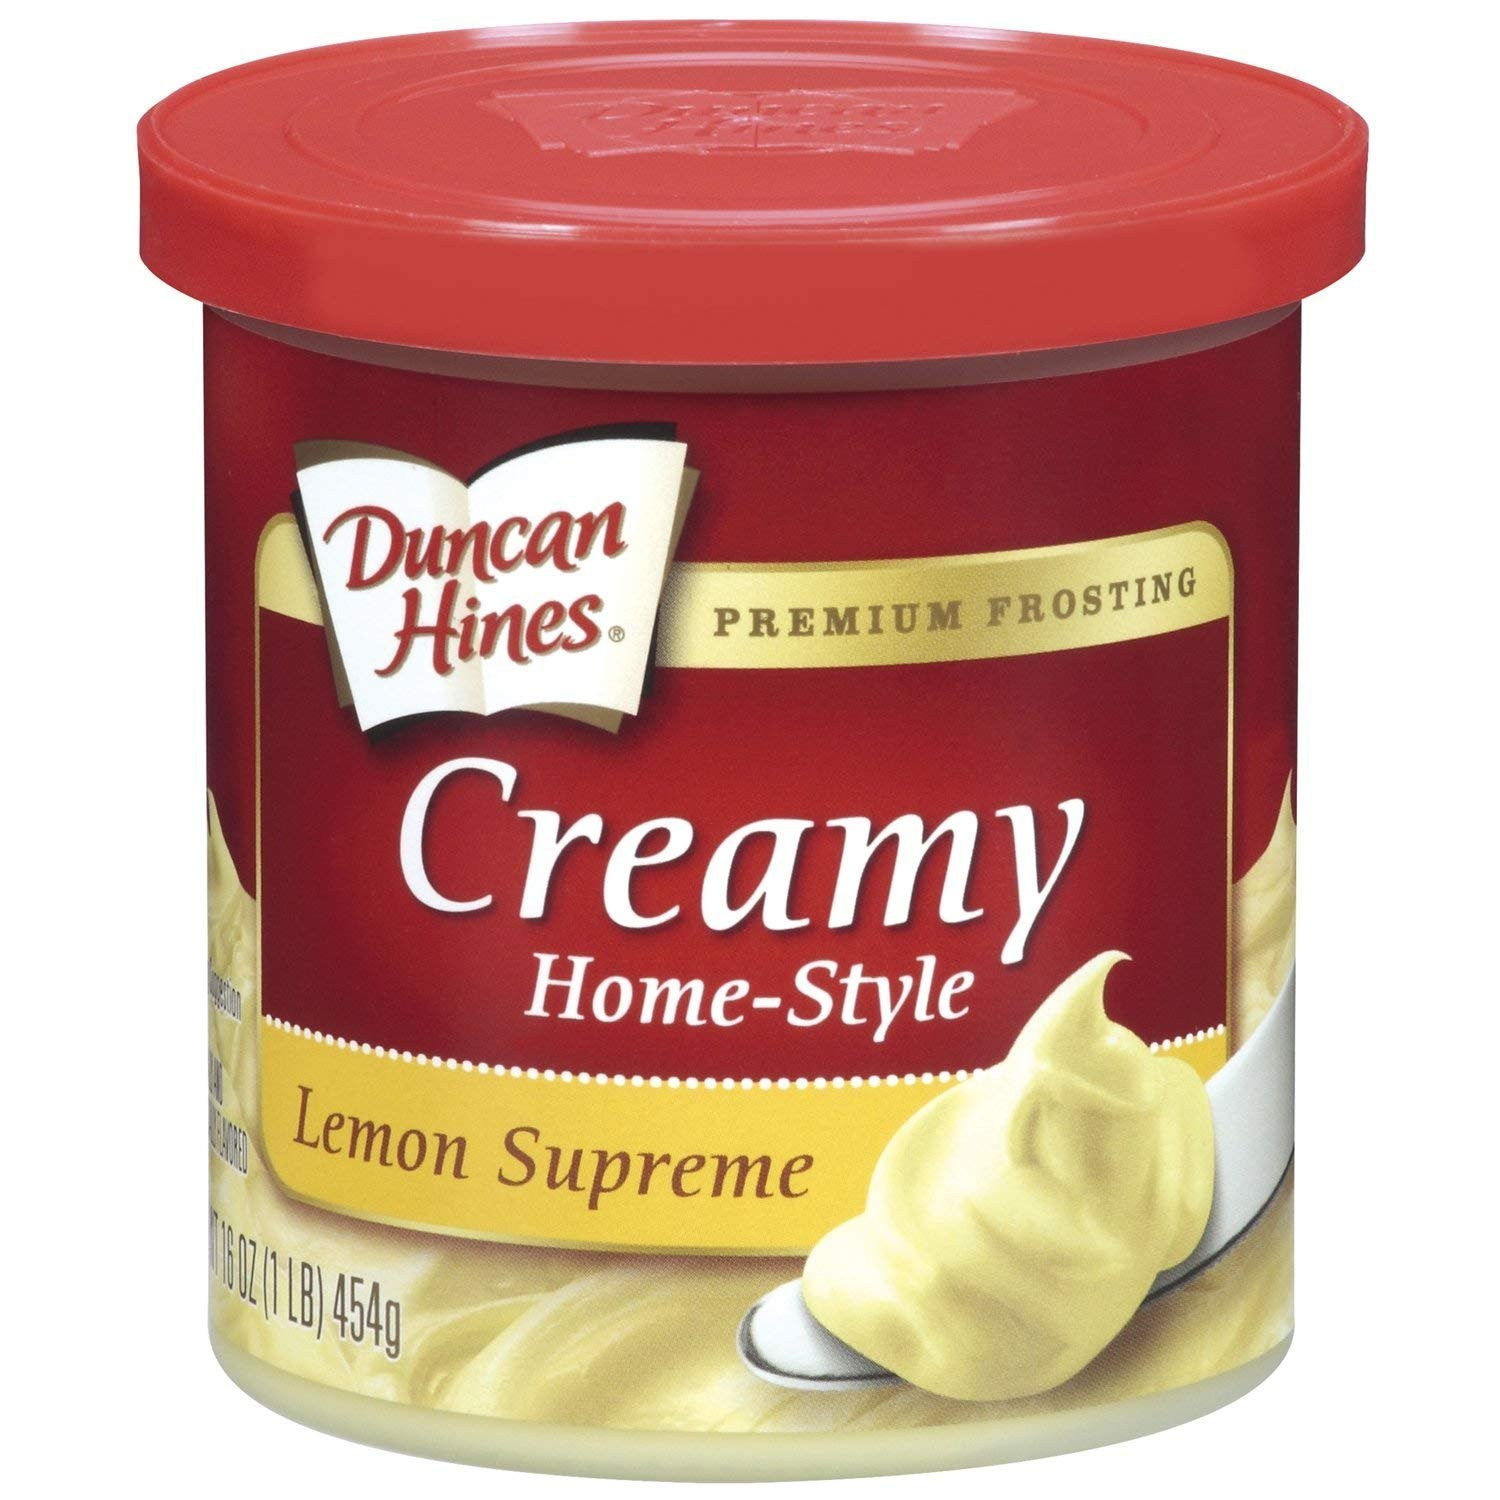 Duncan Hines Creamy Home-Style Frosting, Lemon Supreme,16 Ounce (Pack of 8)